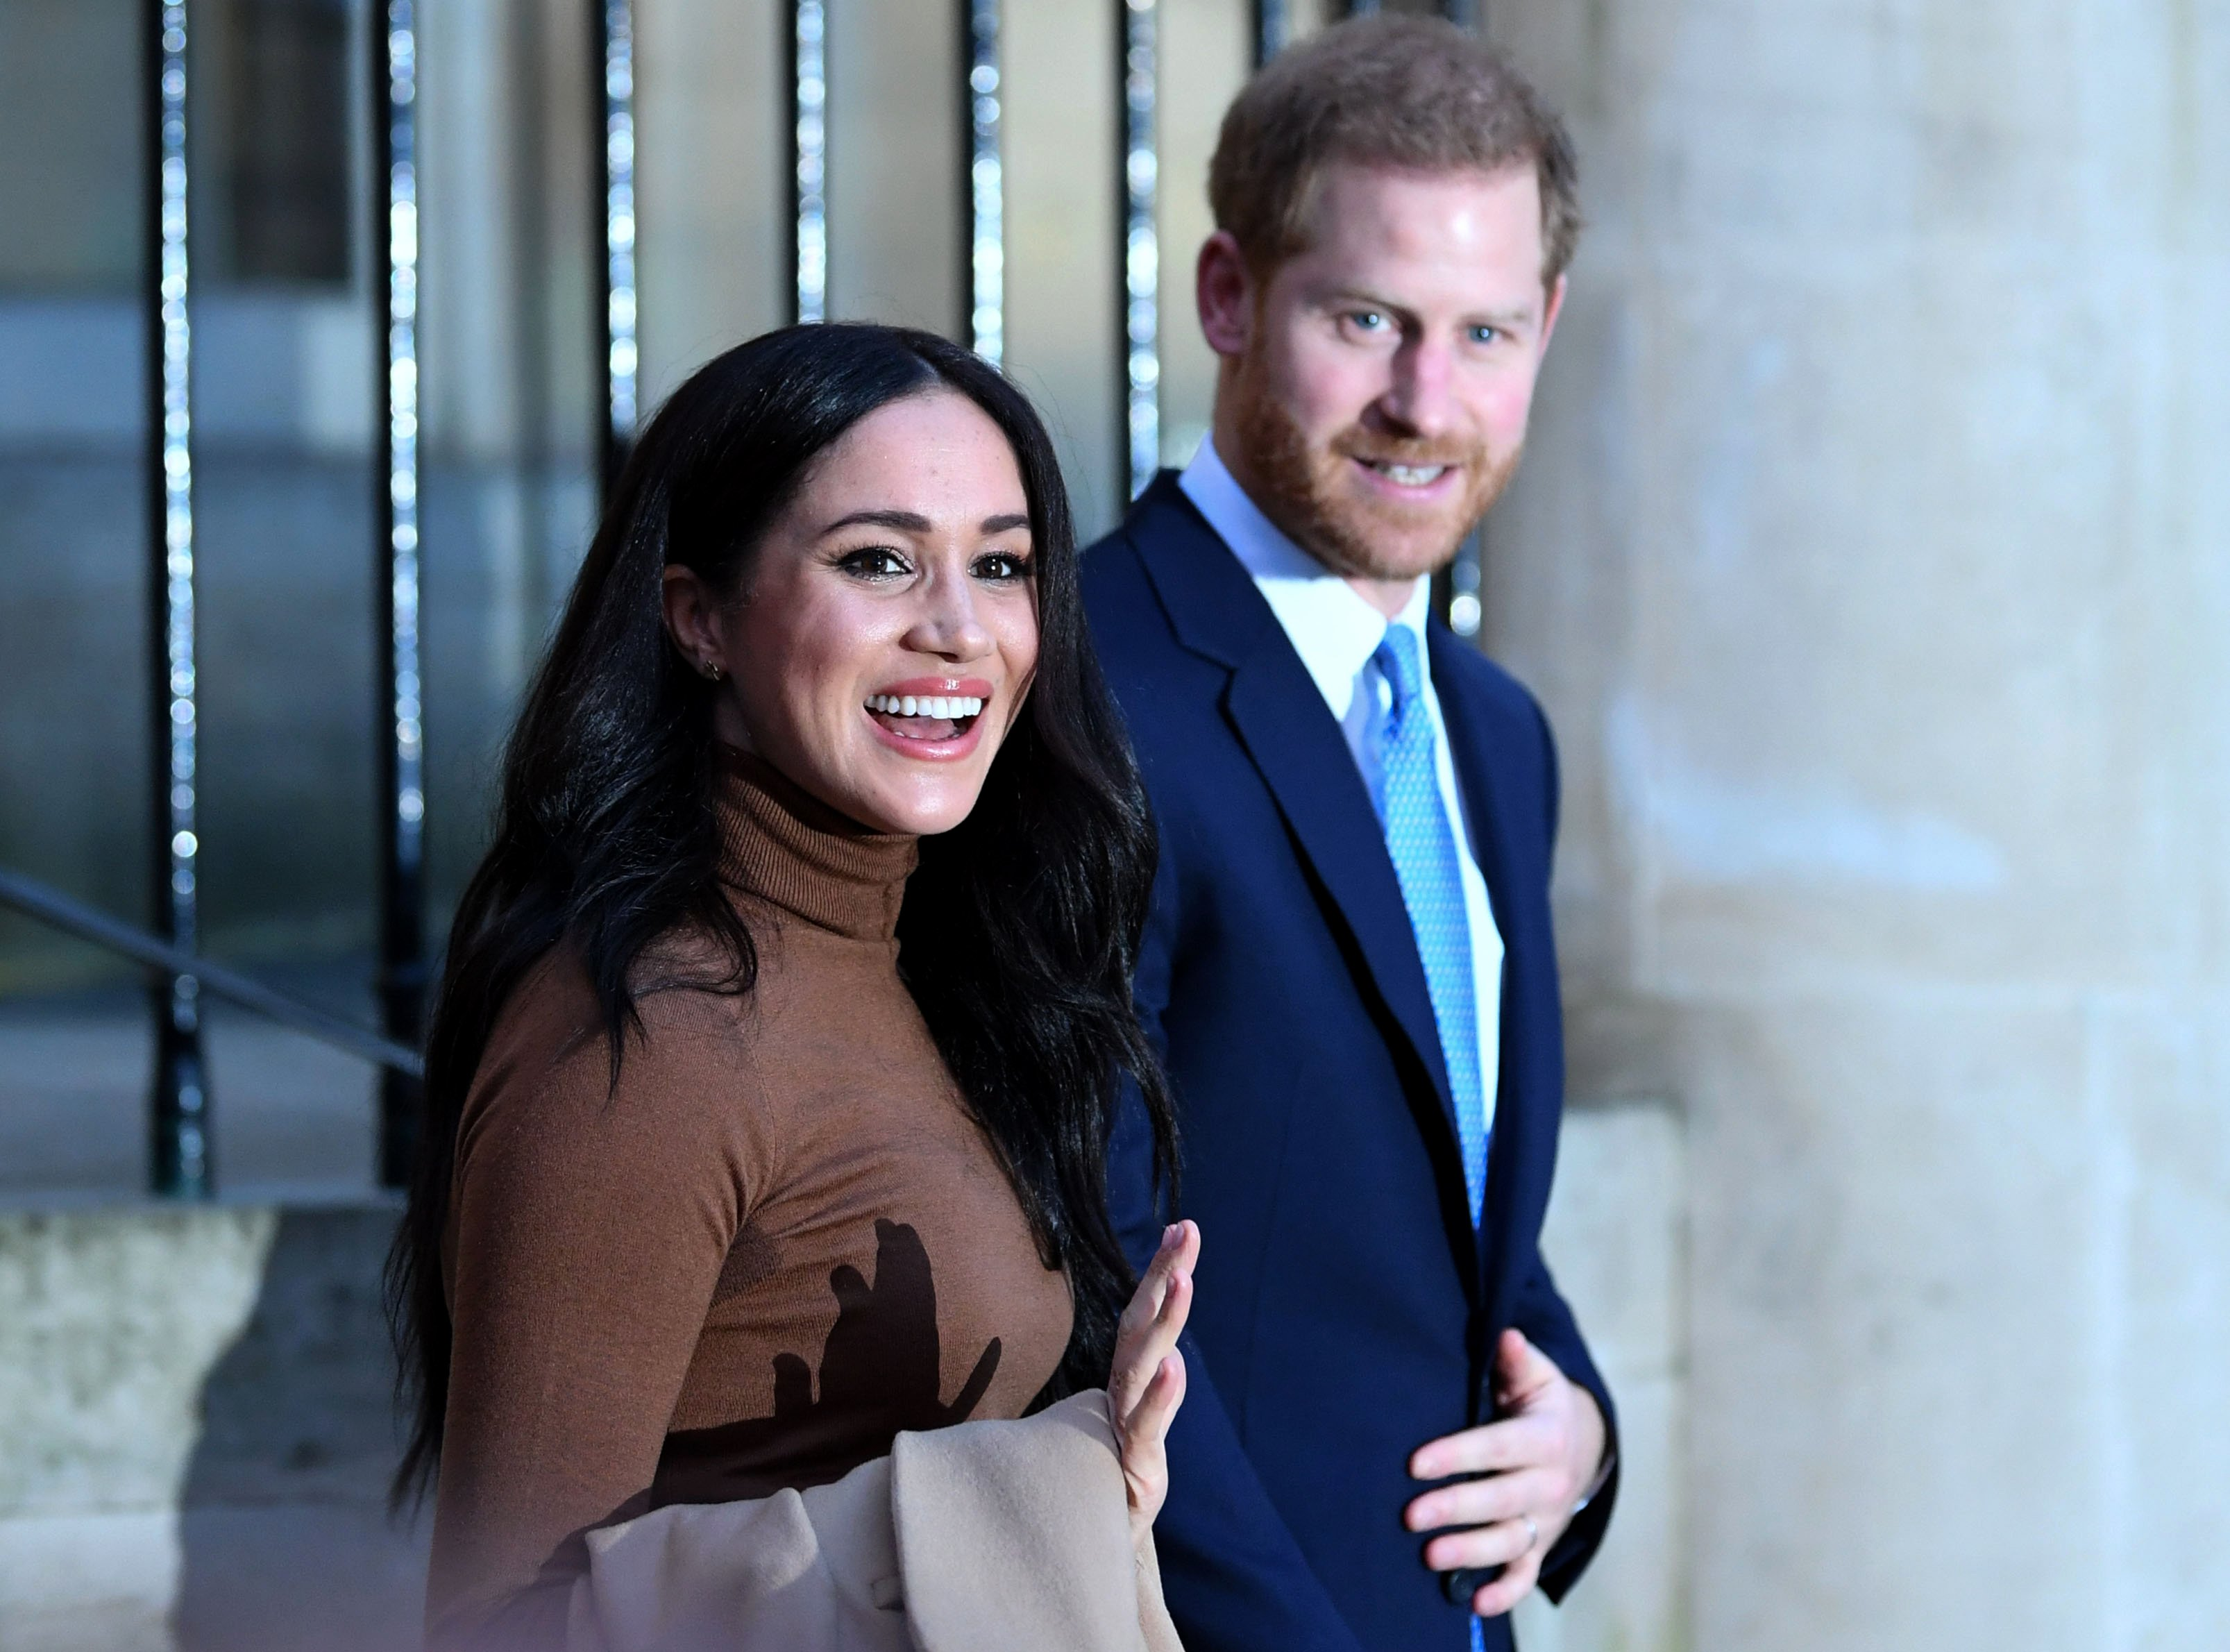 Prince Harry and Meghan Markle during their stay in Canada, on January 7, 2020 in London, England | Photo: Getty Images